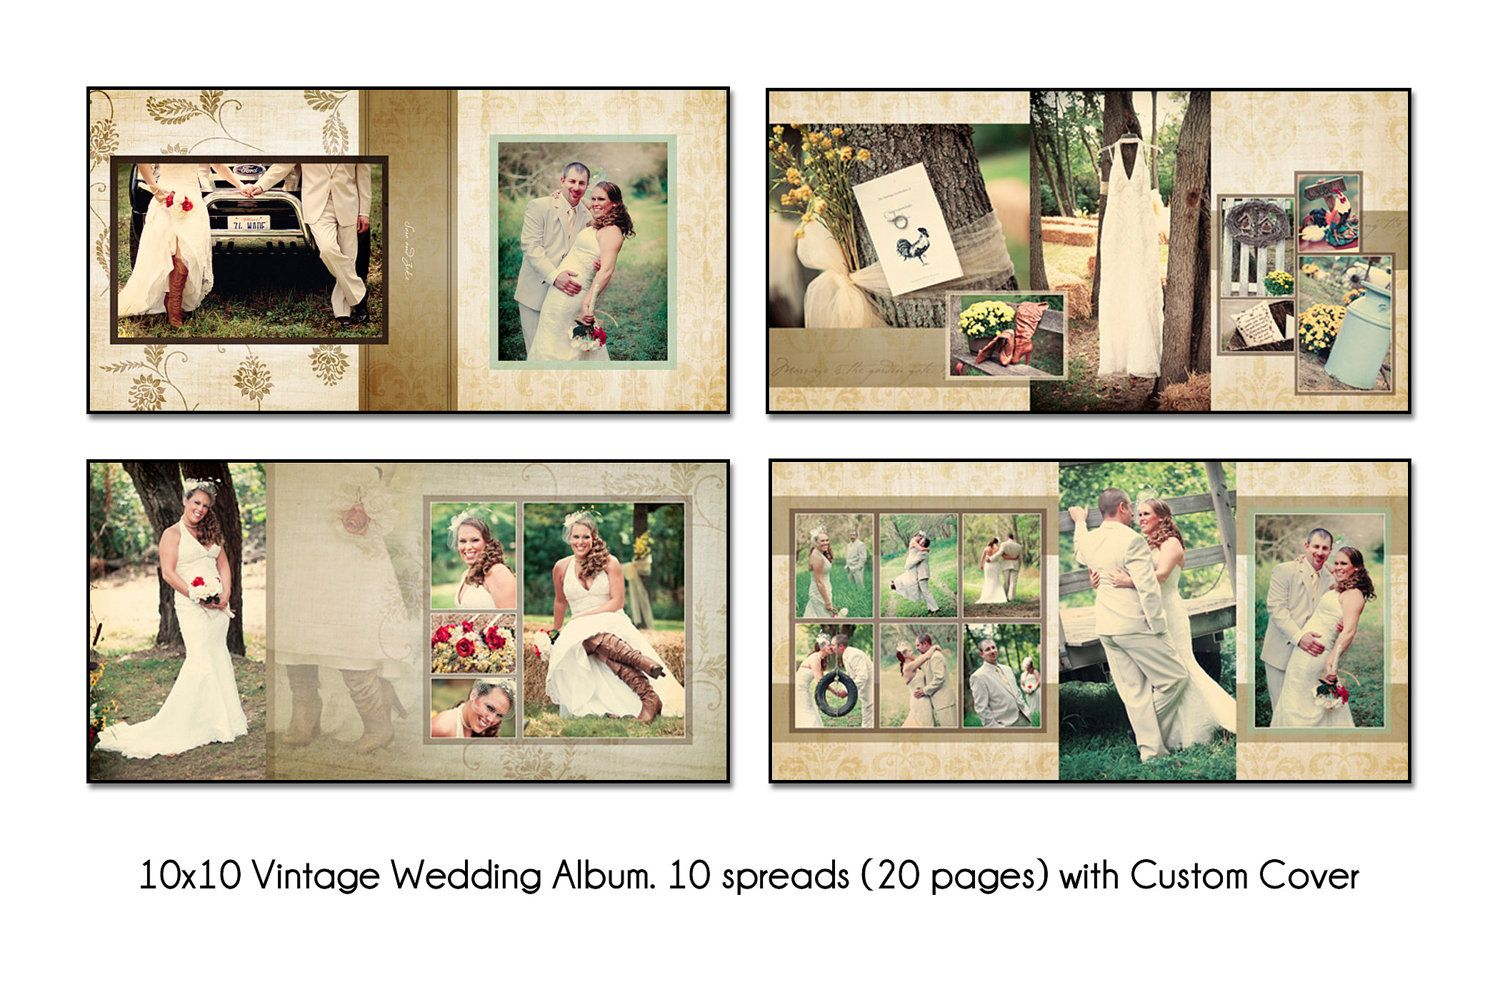 Psd wedding album template vintage 10x10 10spread 20 for Wedding photo album templates in photoshop